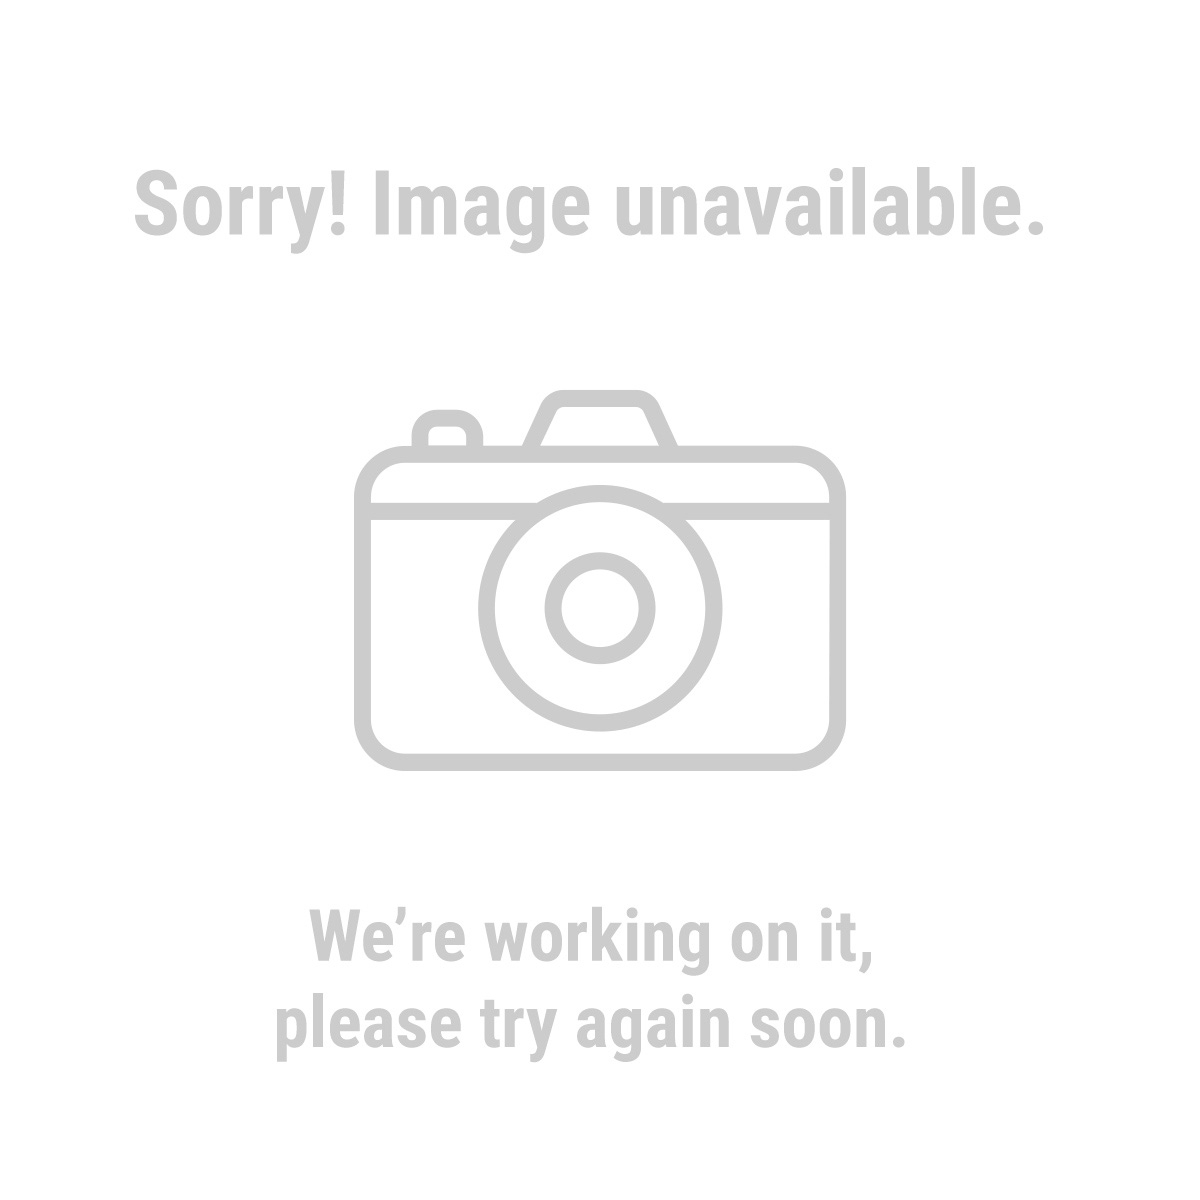 Pittsburgh 47770 6 Piece Screwdriver Set